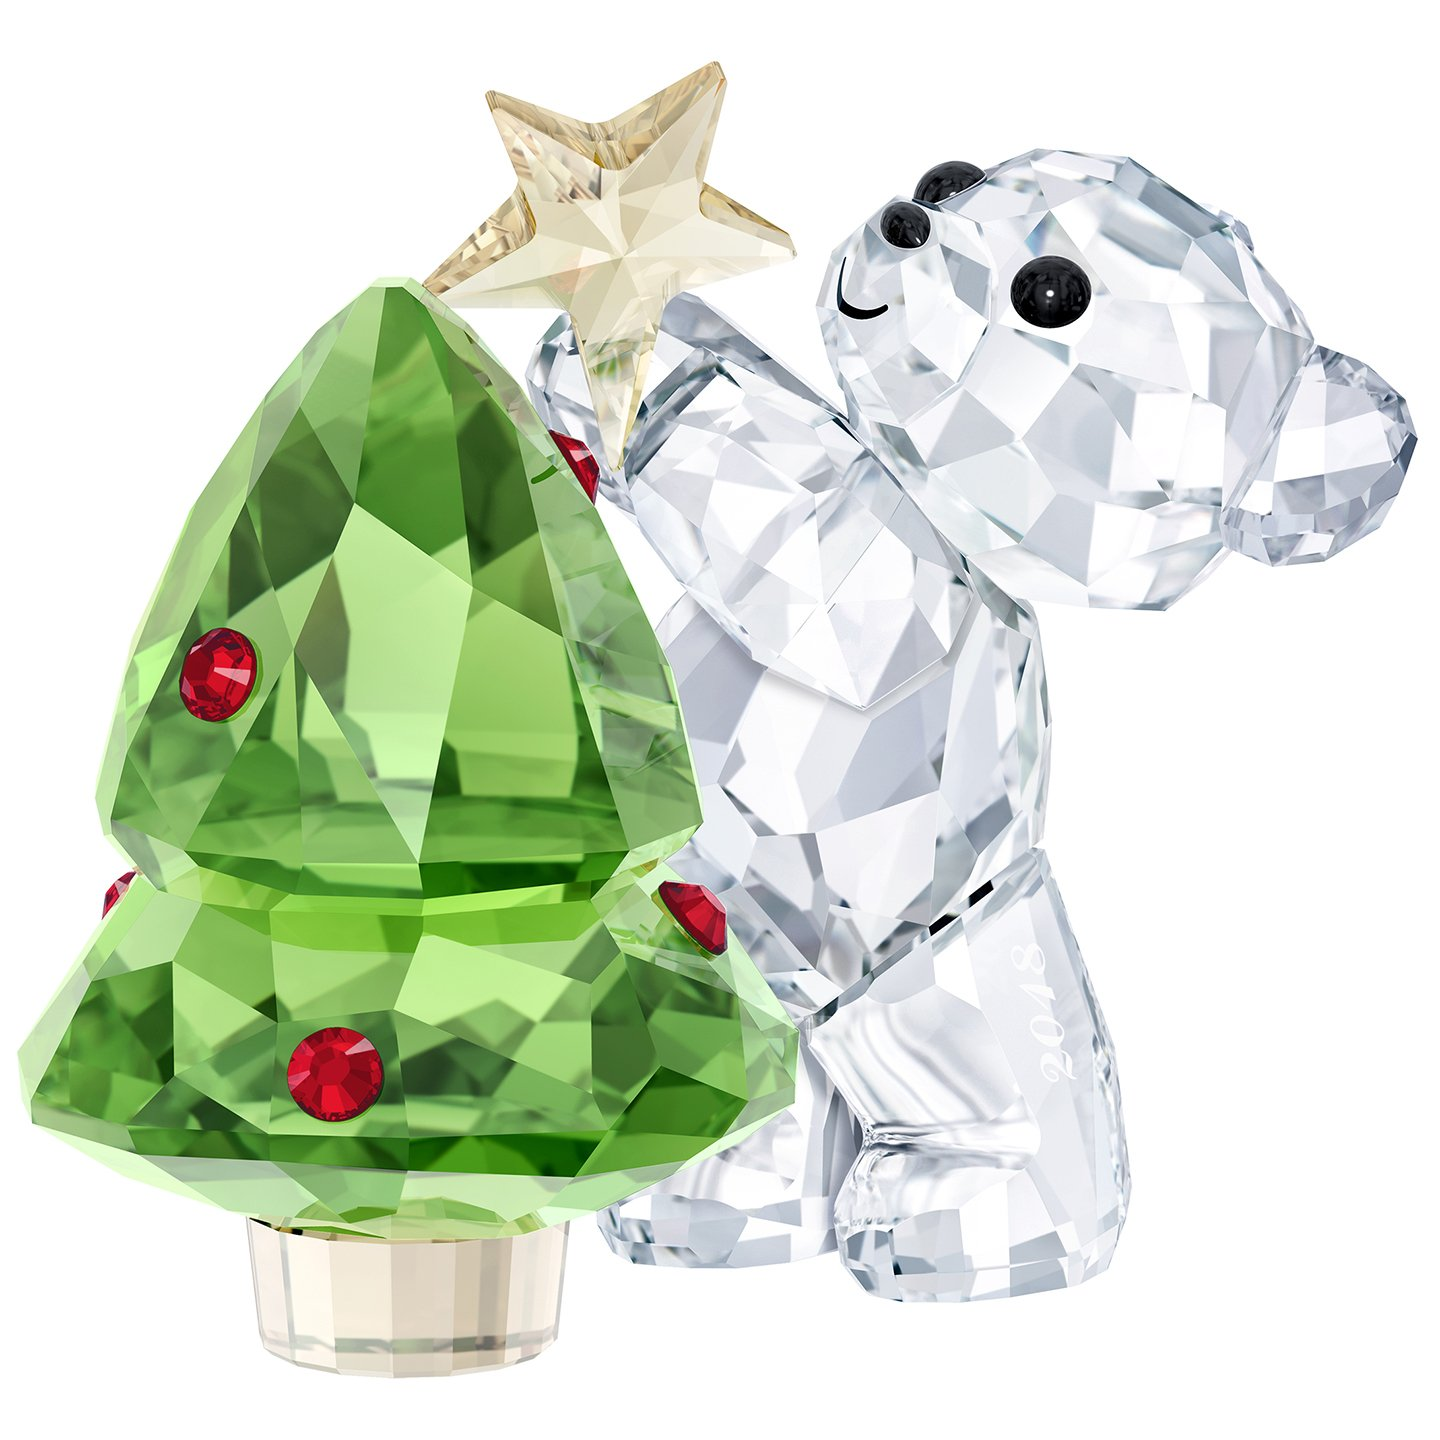 d2742d026 Amazon.com: Swarovski KRIS BEAR CHRIST 2018: Kitchen & Dining